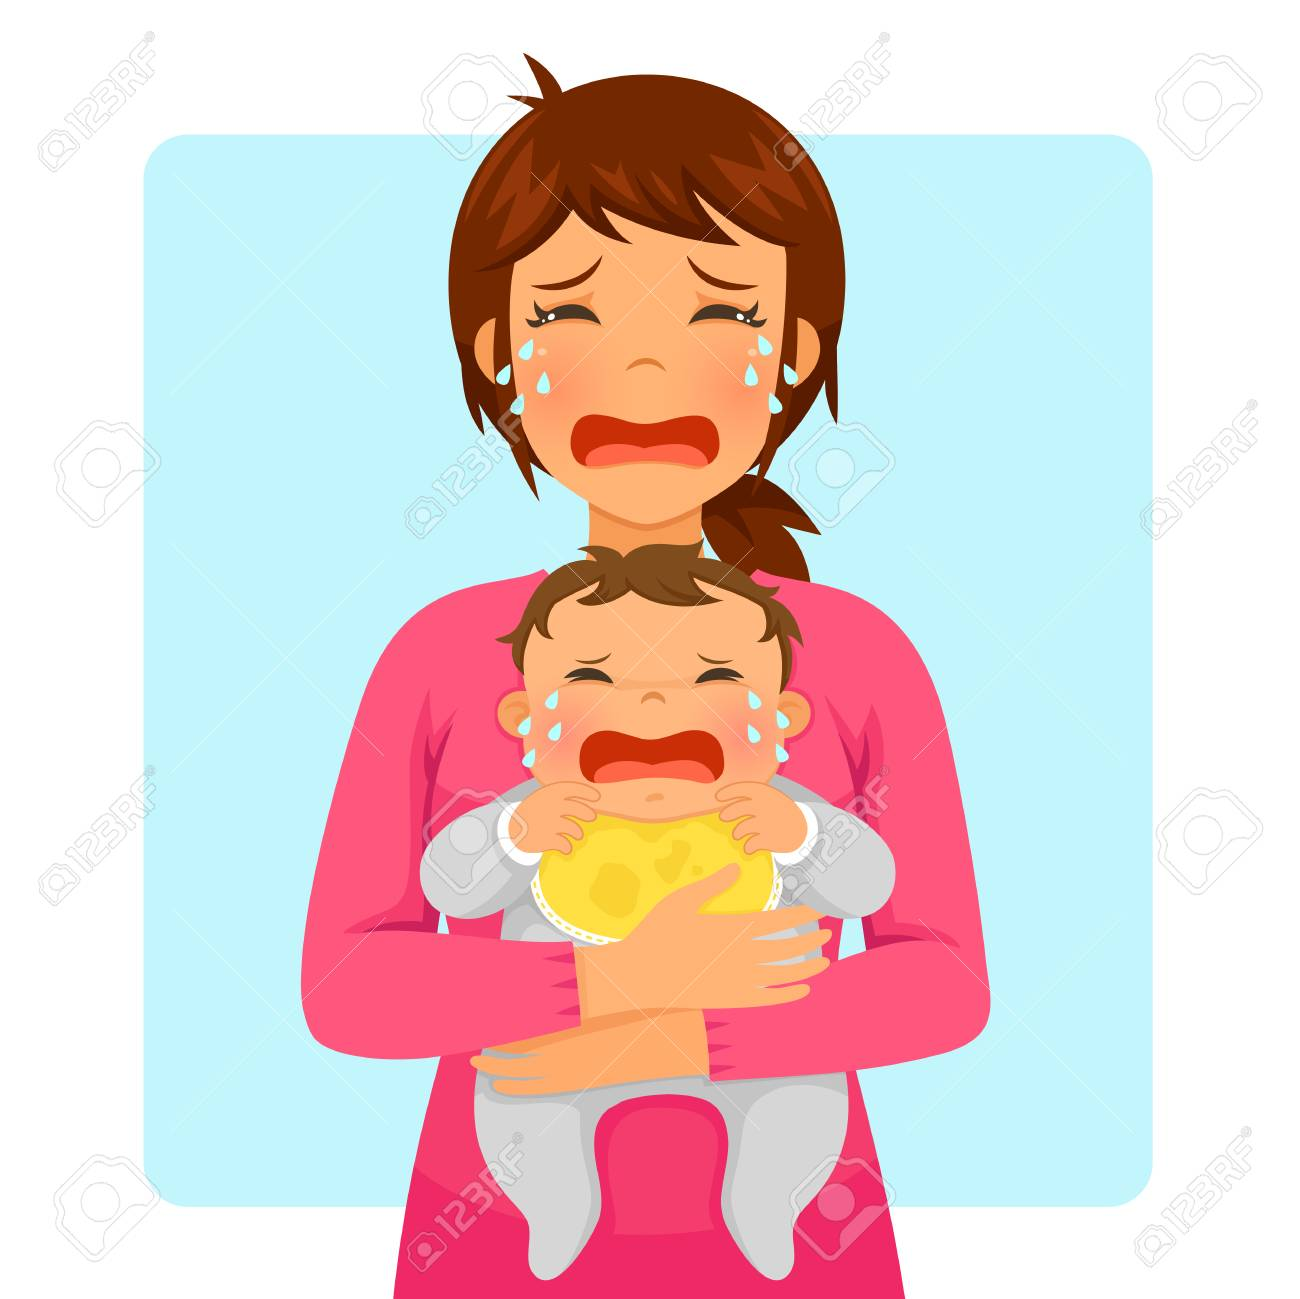 Young mother crying while holding her crying baby - 94187496